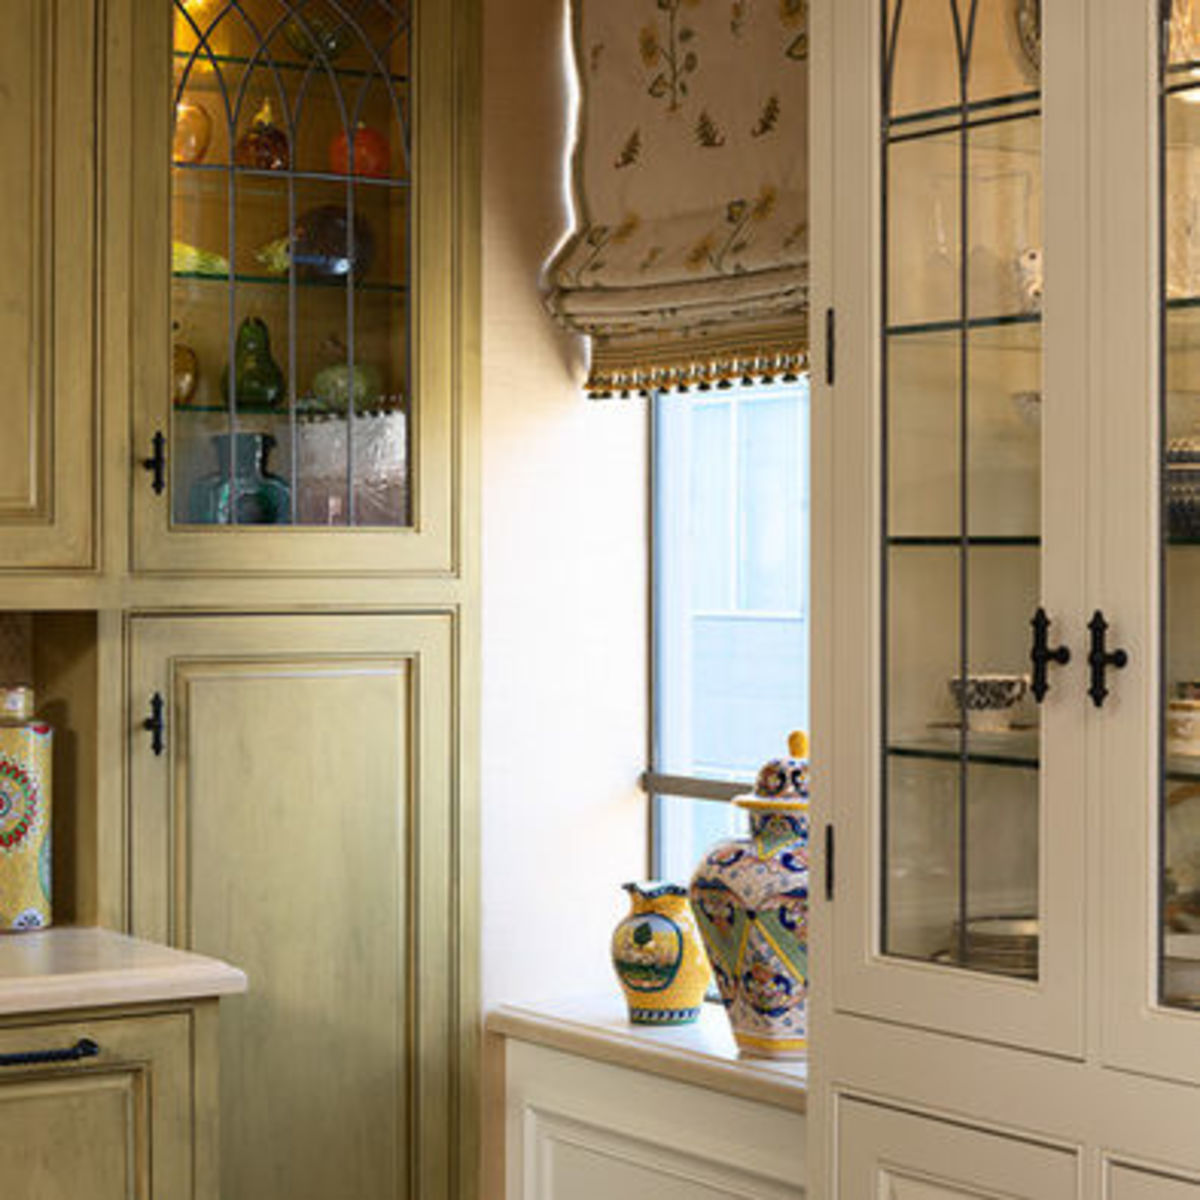 High quality brass knobs combined with glass cabinets add an Old World touch to the sage green and white cabinets